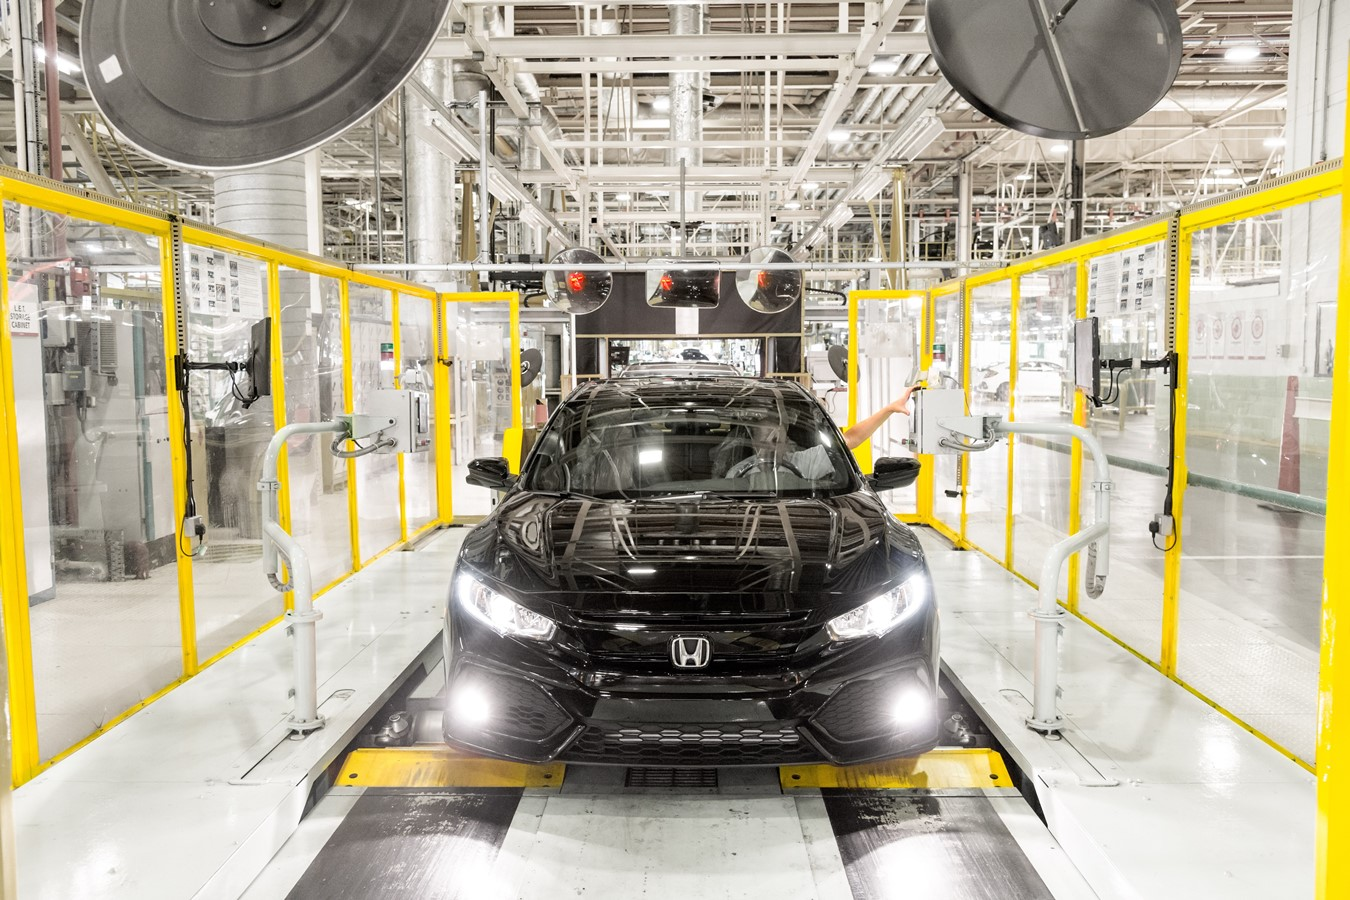 Honda announces proposal to cease production at its Swindon factory in 2021